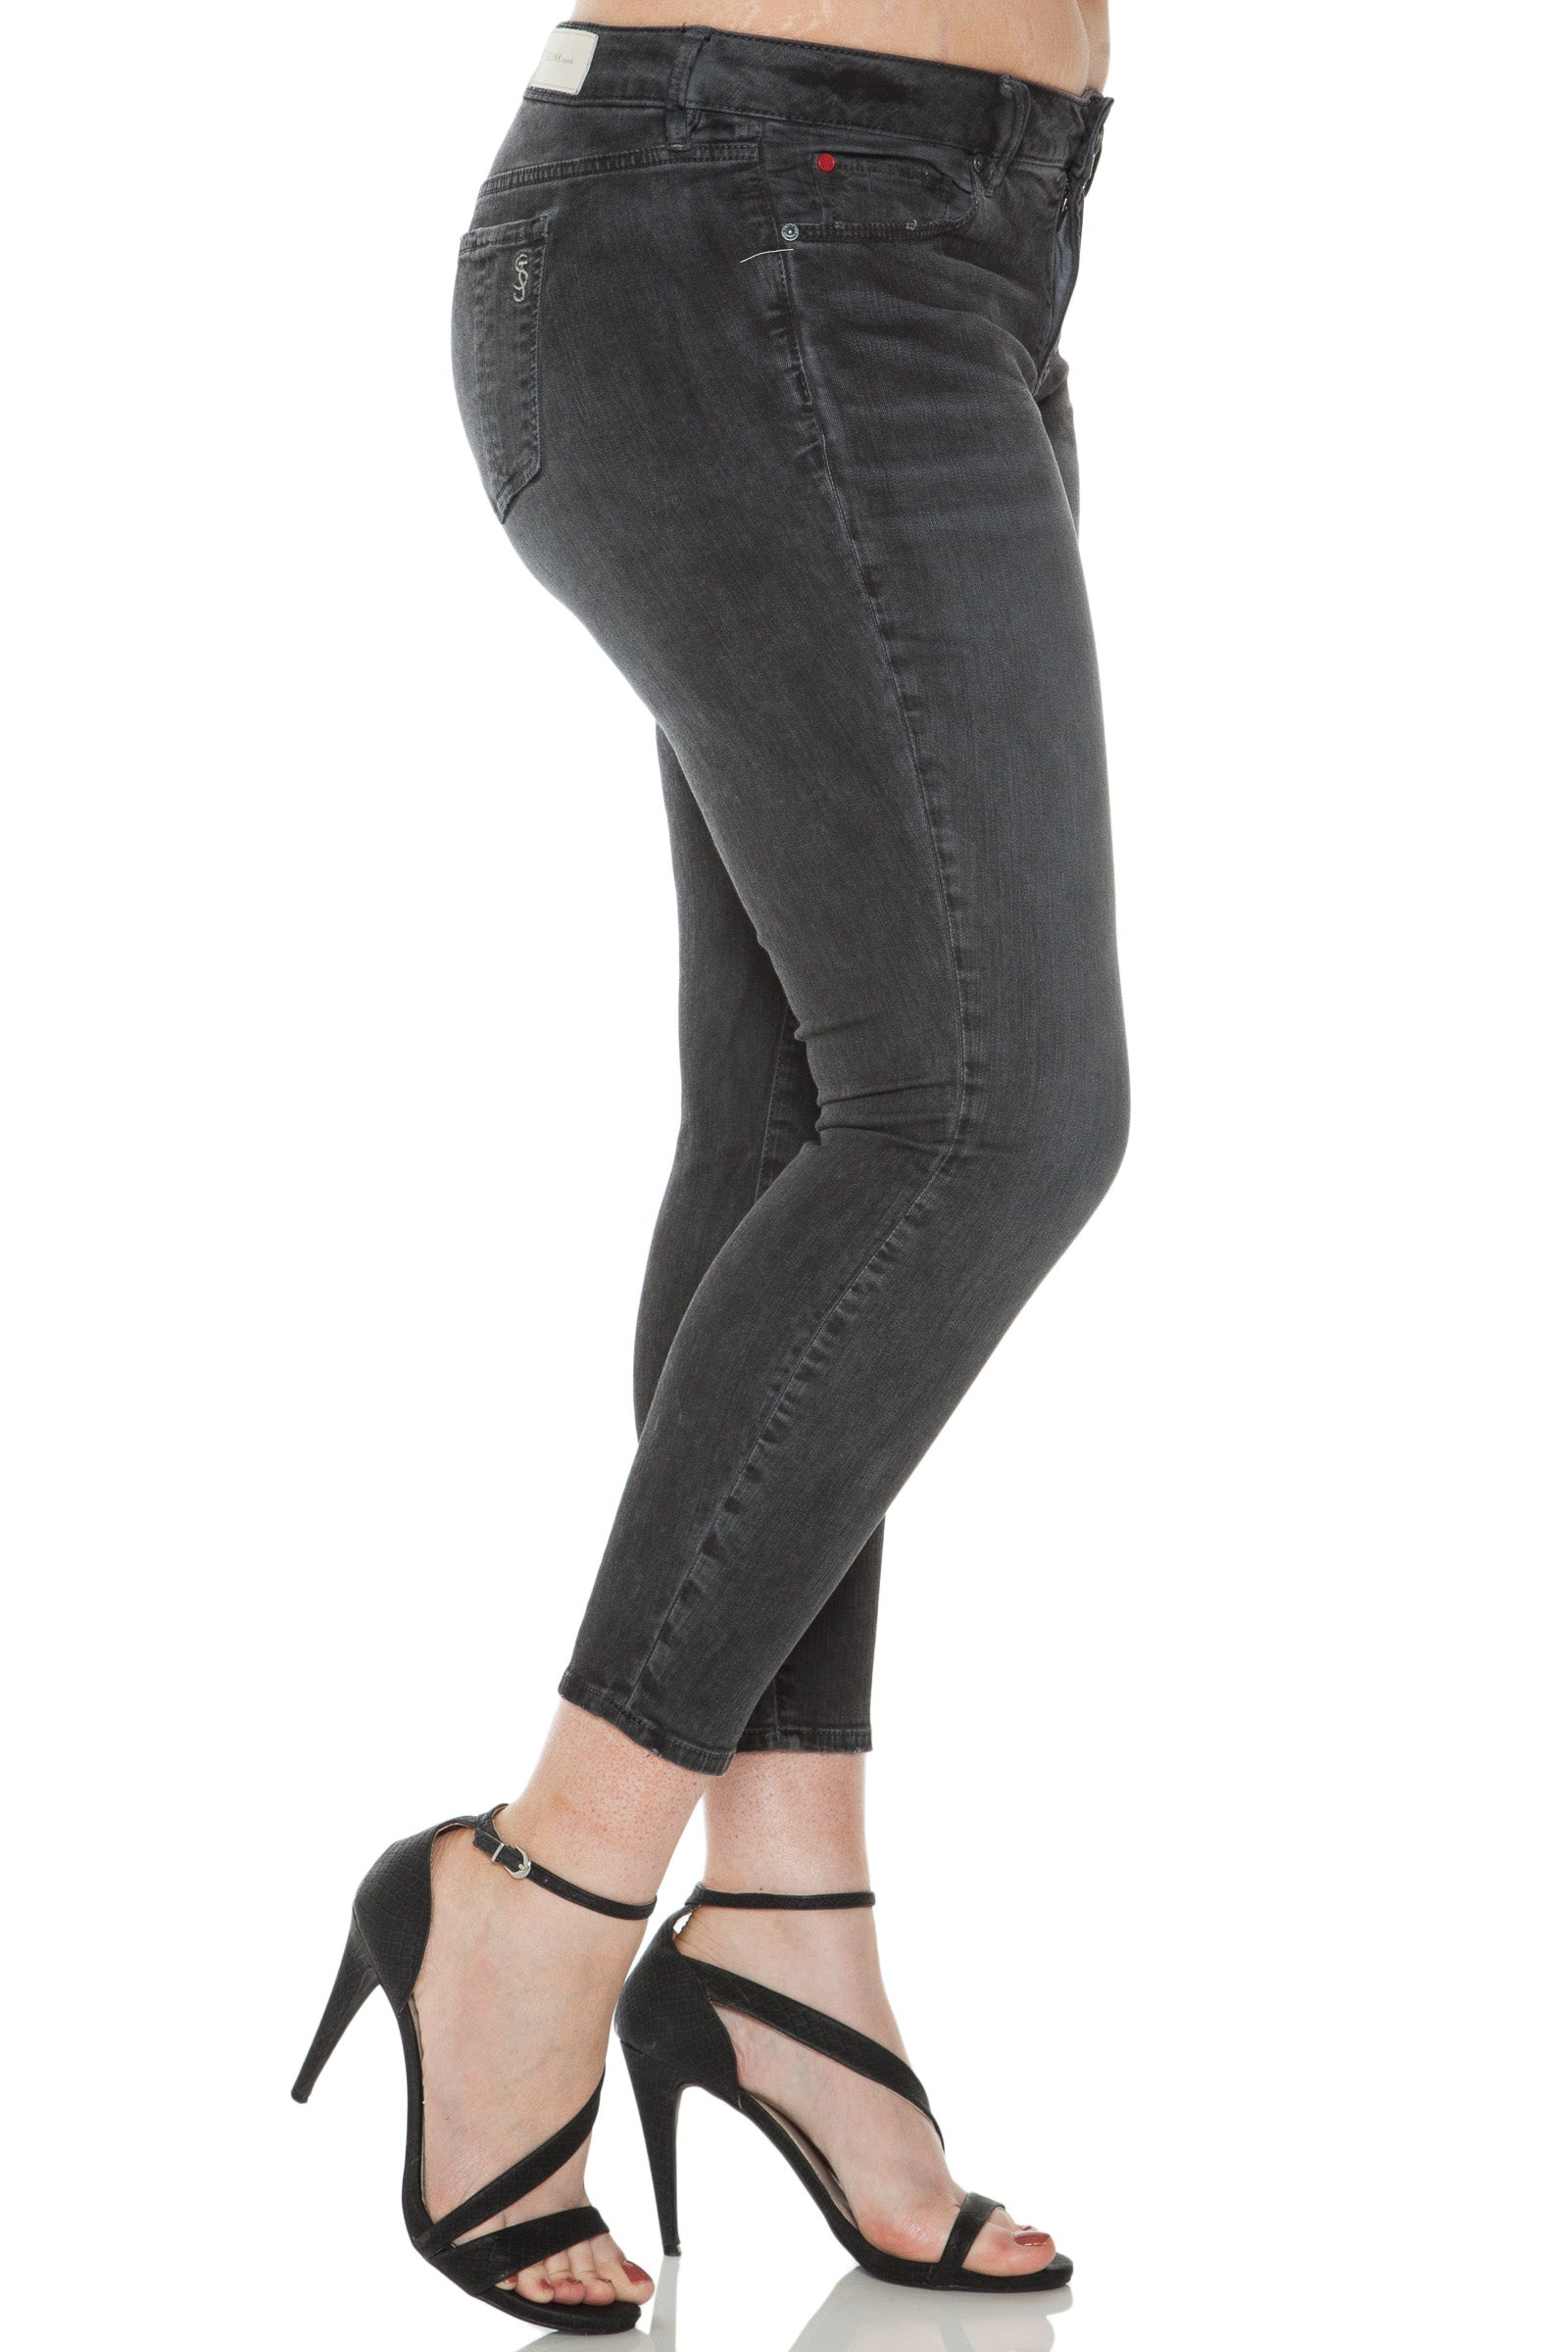 Ice Dye Ankle Jegging - AFTER DARK